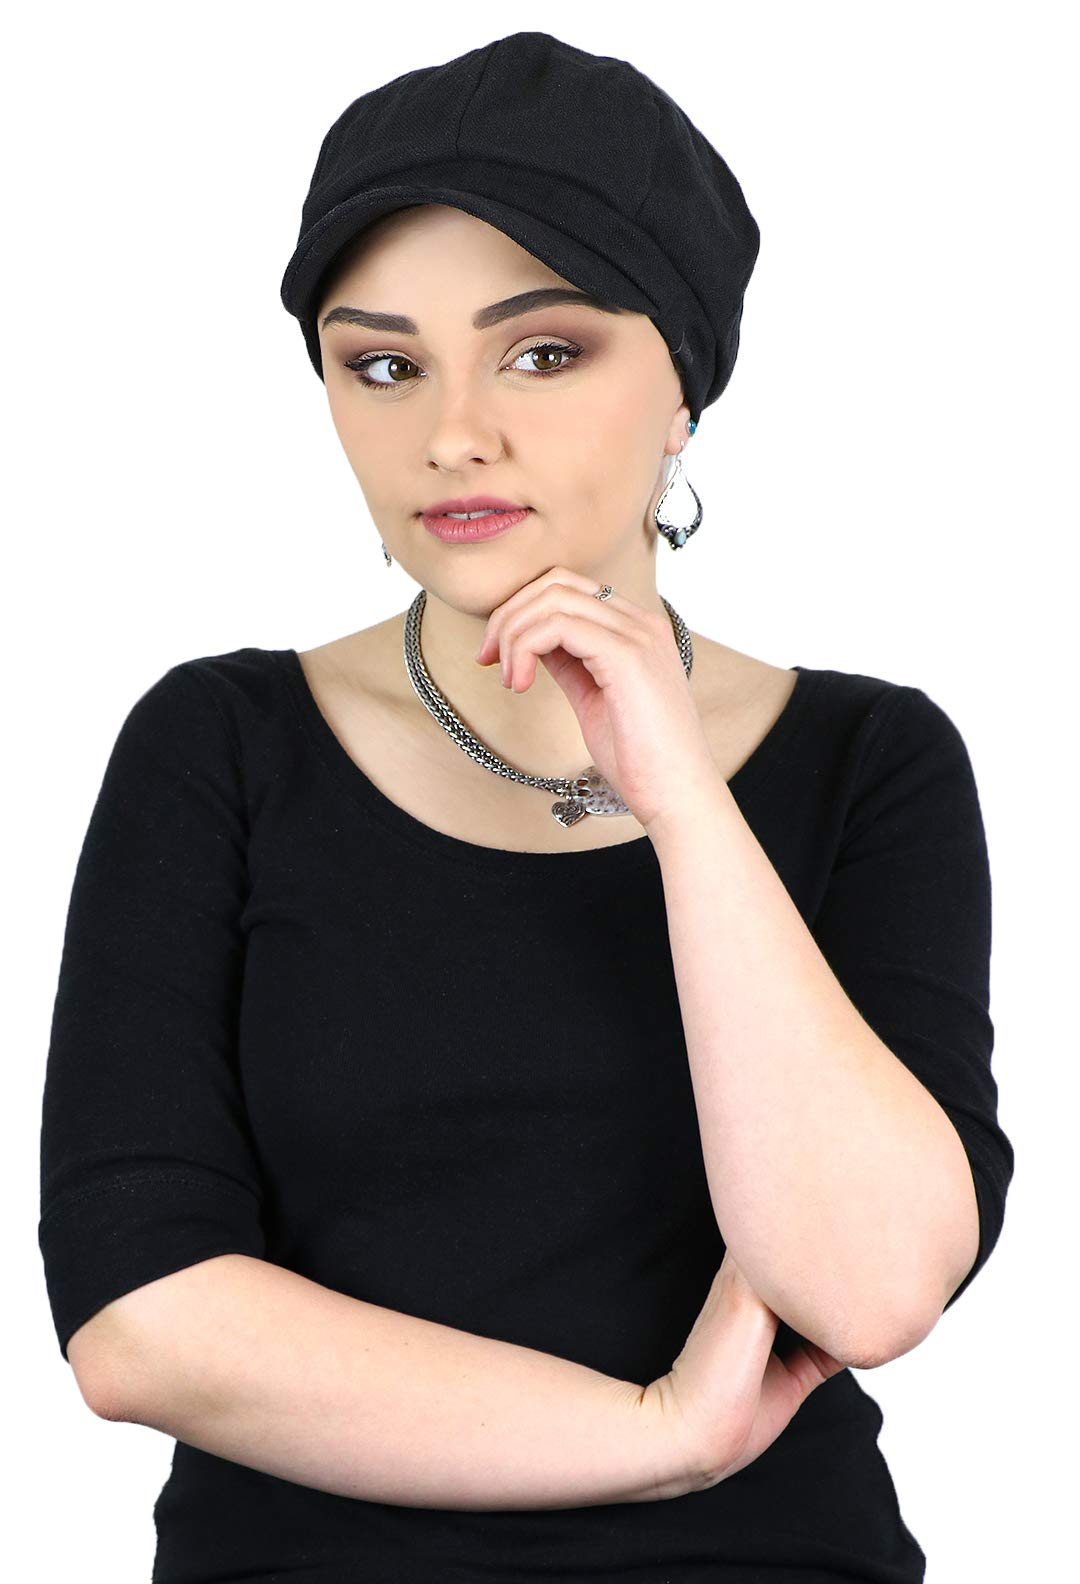 Newsboy Cap for Women Cabbie Gatsby Summer Hats Ladies Chemo Headwear Head Coverings Belfast (Black)